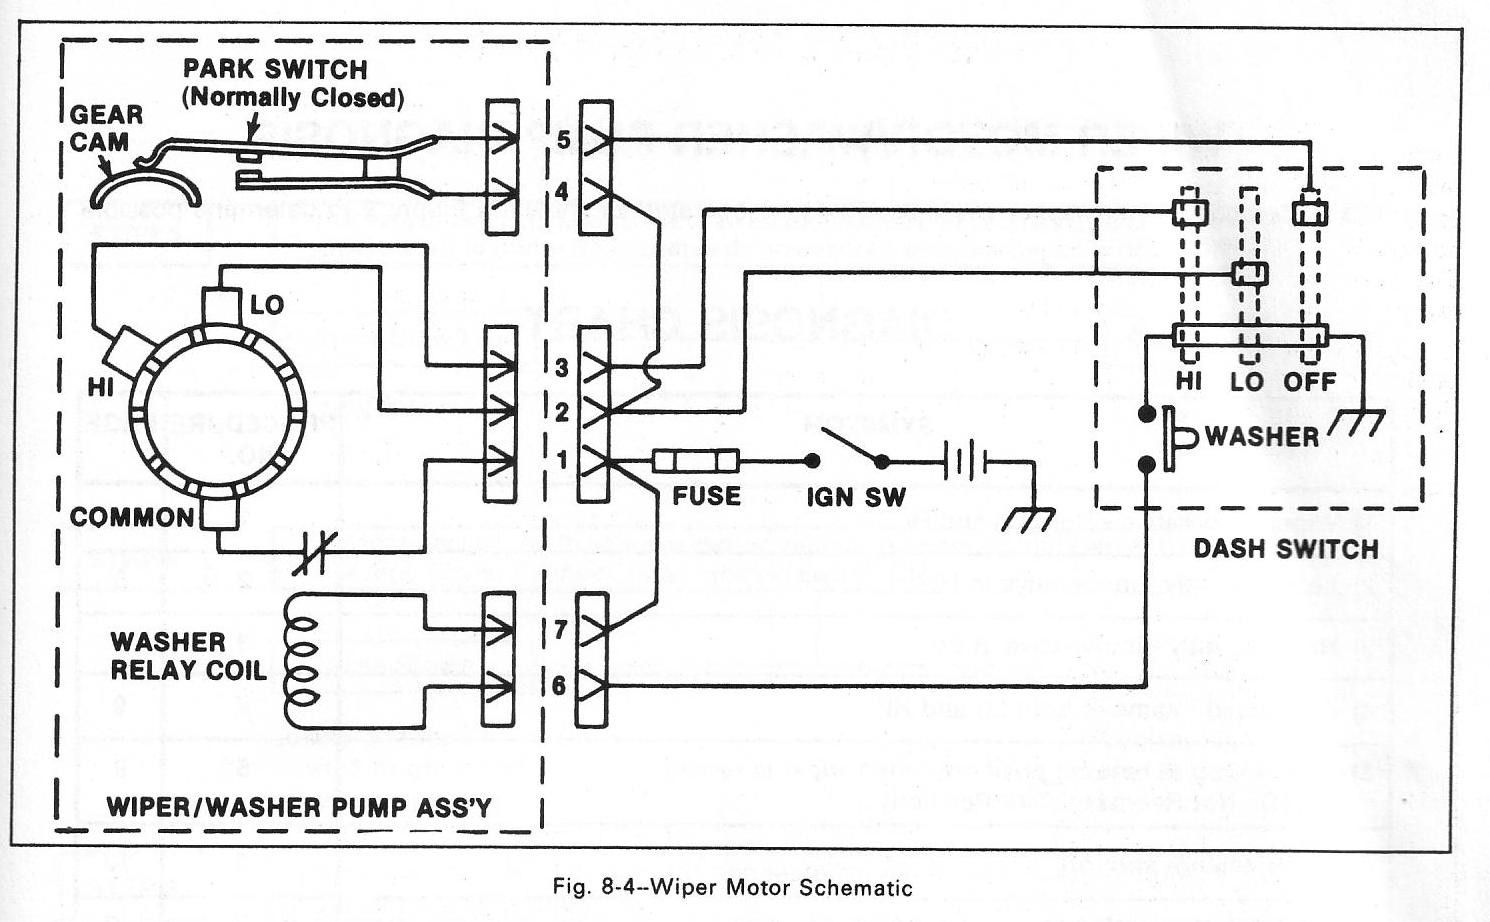 [SCHEMATICS_4ER]  Park Switch And Windshield Wiper Wiring Diagram With Washer Relay Coil In Wiring  Diagram Wiper Motor | Chevy, Chevy trucks, Windshield | 1966 El Camino Wiper Wiring Diagram |  | Pinterest